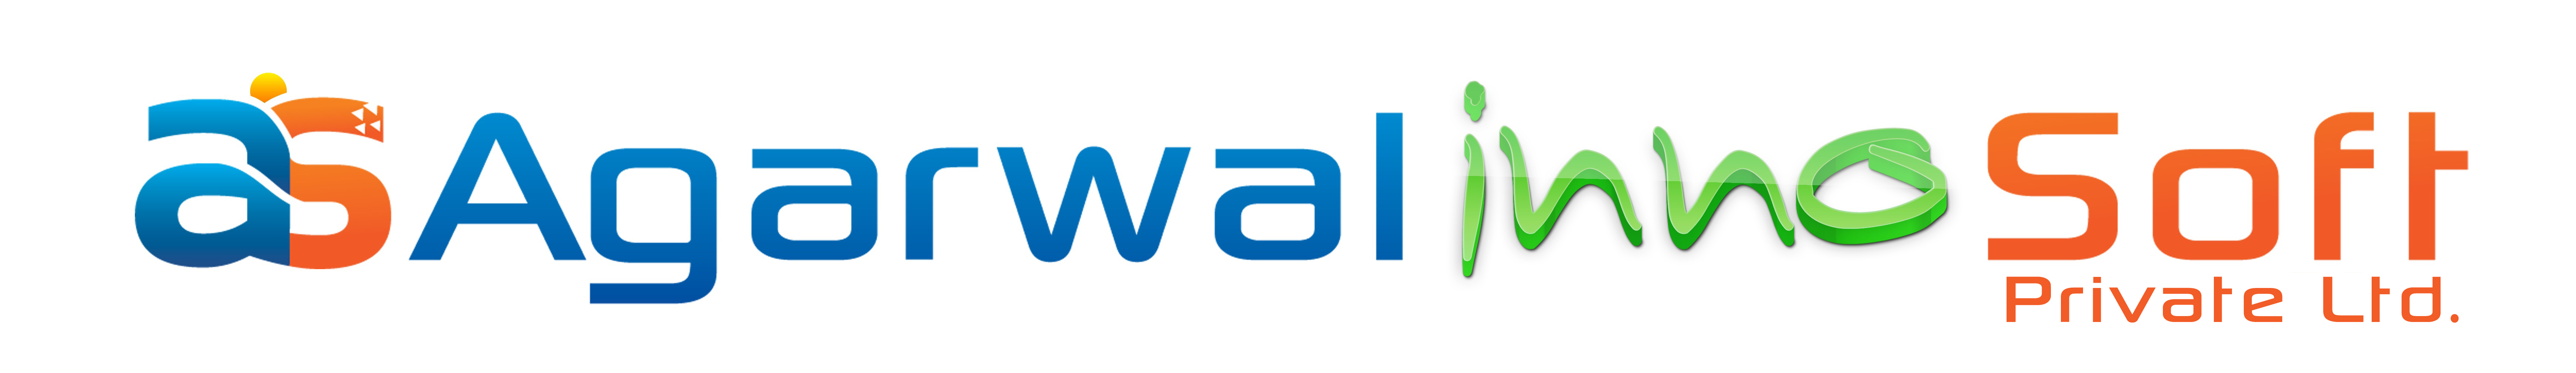 Company Logo For Agarwal InnoSoft Private Limited